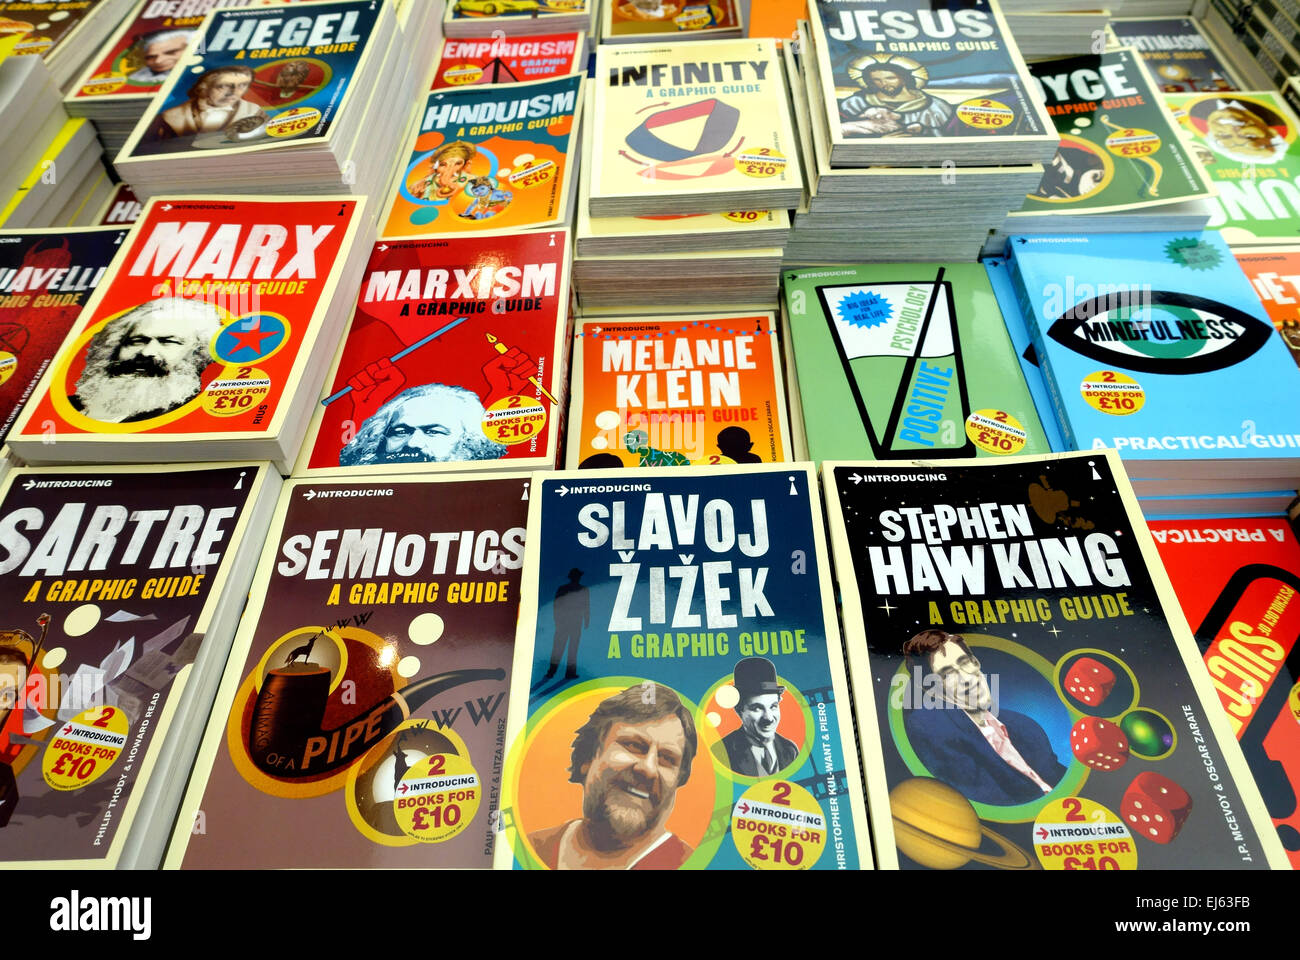 'Introducing' series of books from Icon about famous thinkers and ideas, London - Stock Image